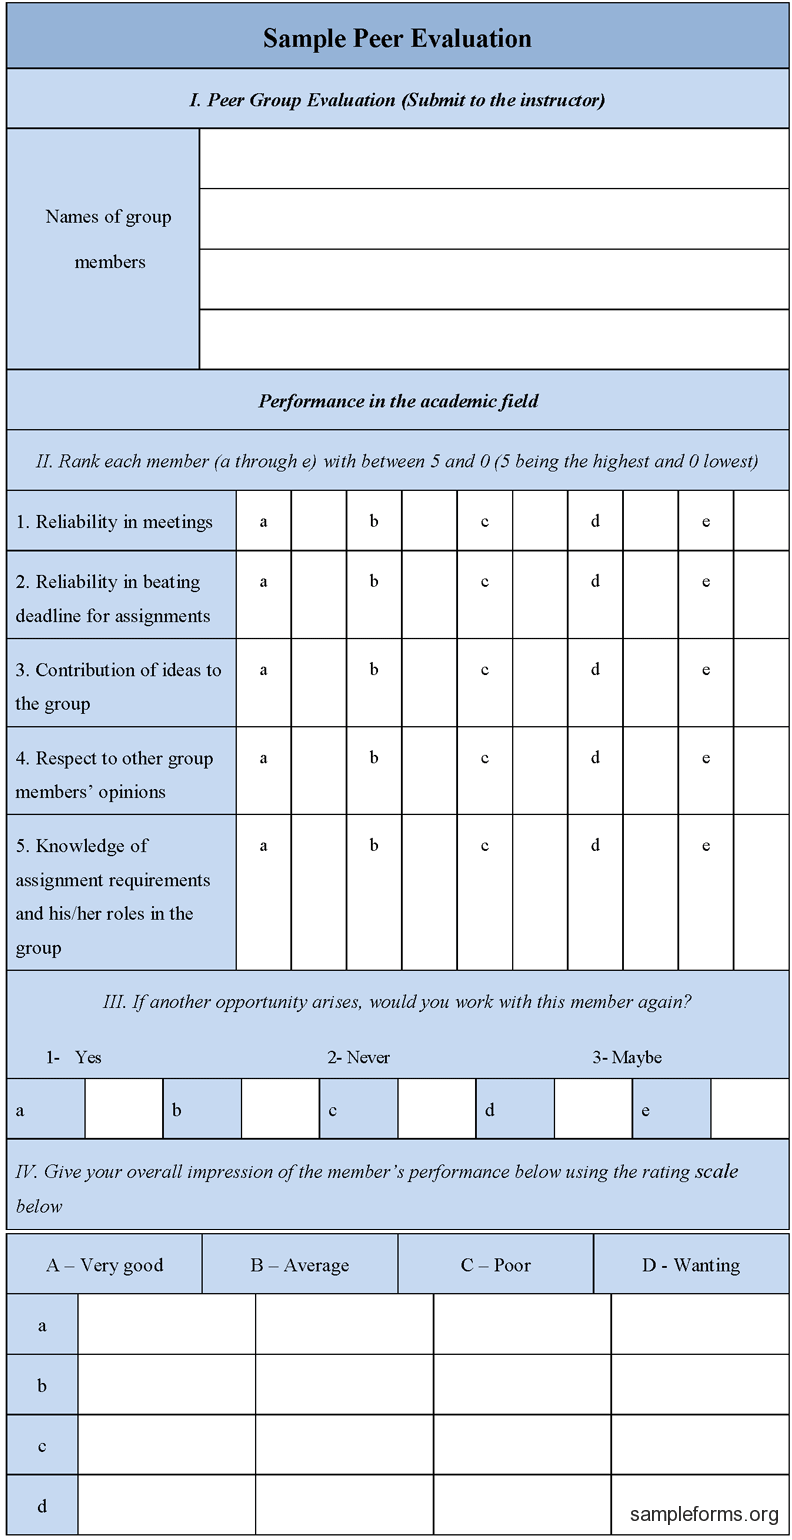 Download Editable Sample Peer Evaluation Form For Only